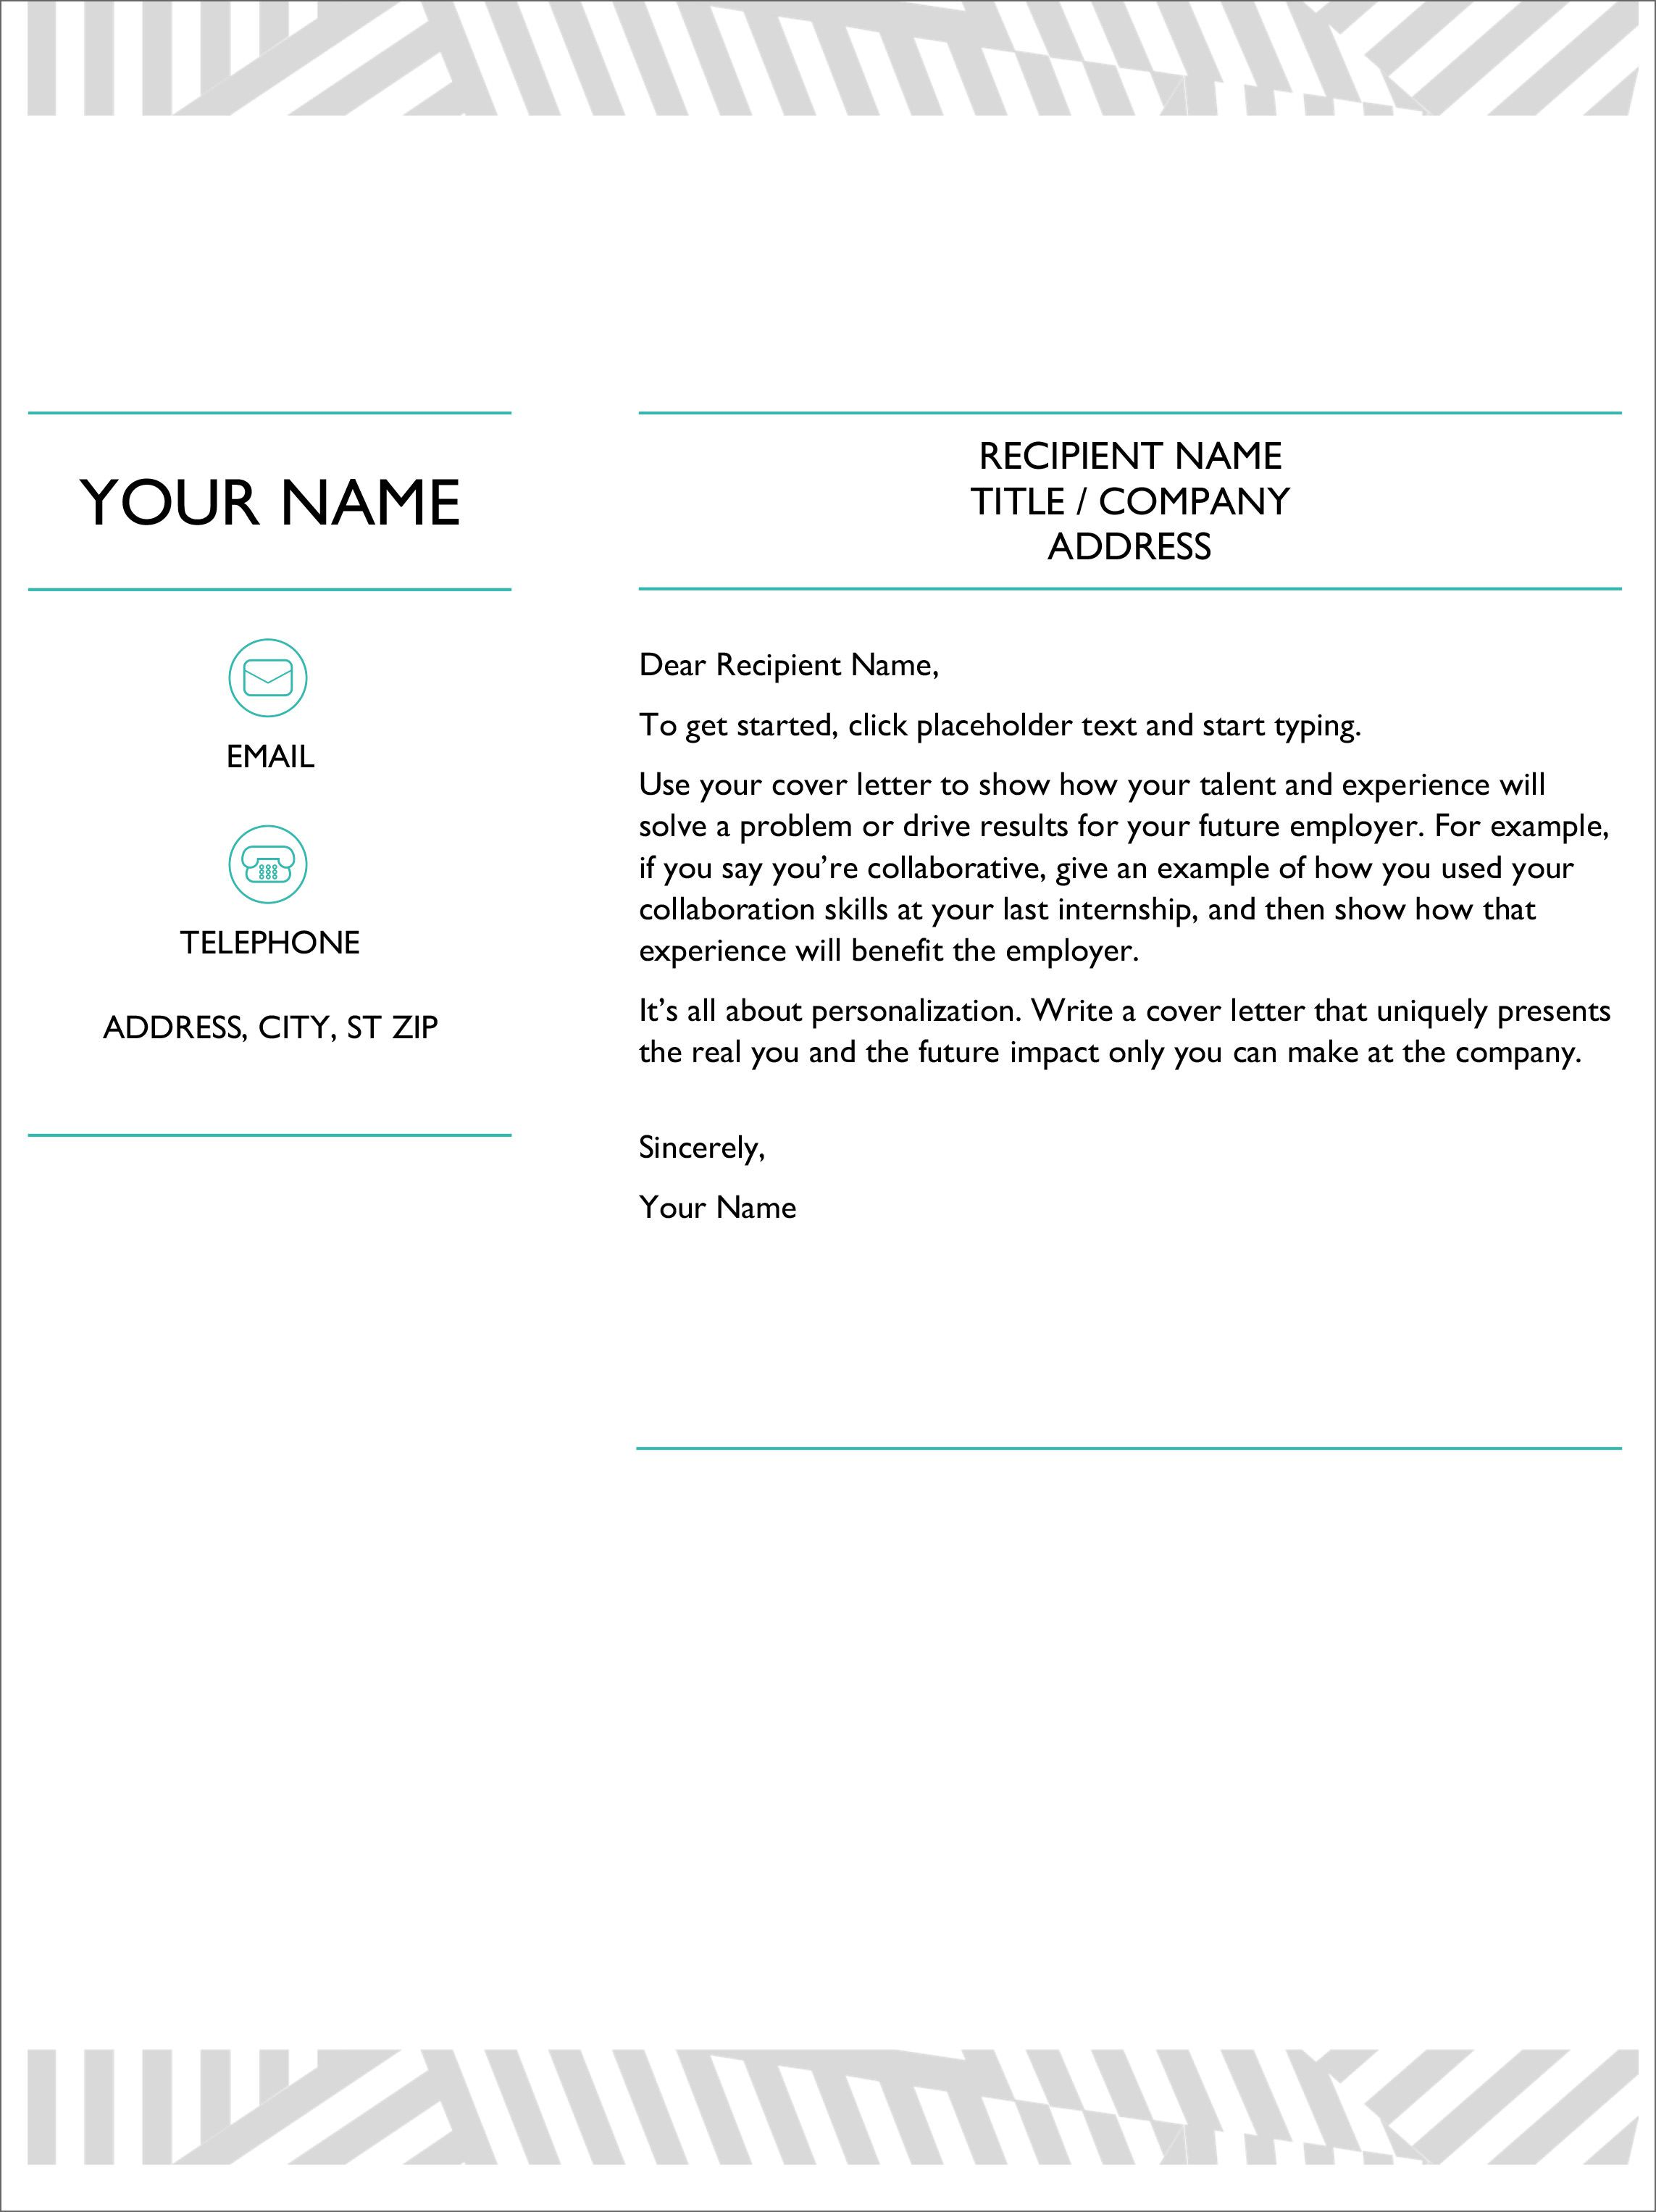 006 Unusual Cover Letter Template Microsoft Word Highest Clarity  2007 FaxFull